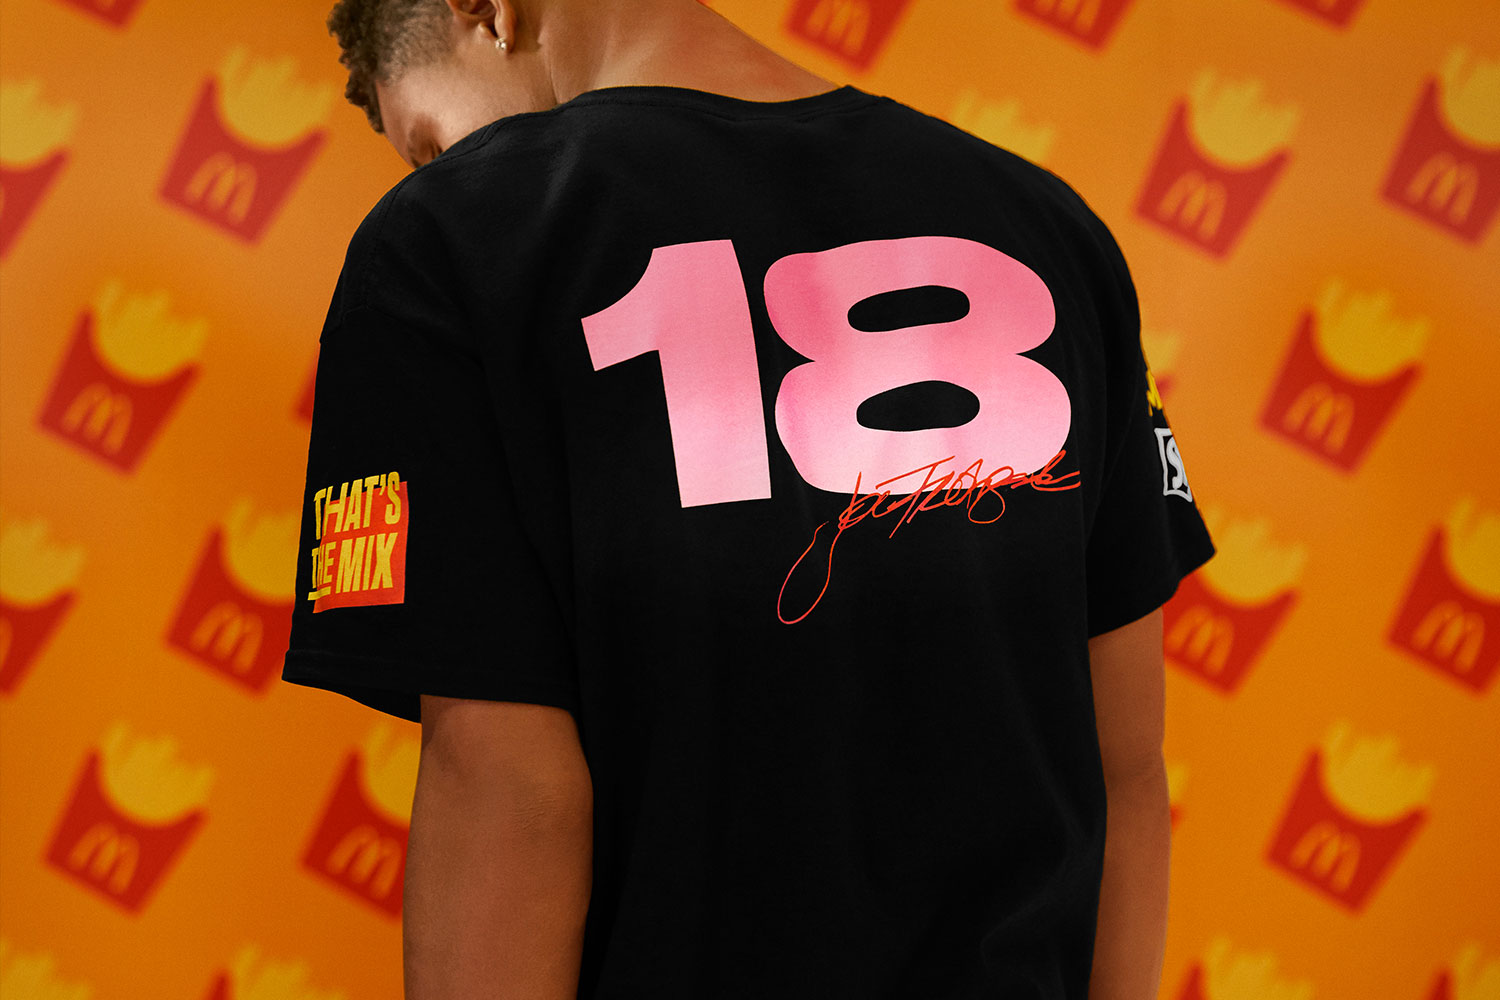 back of a That's the MIX t-shirt with Joe Freshgoods logo with number 18